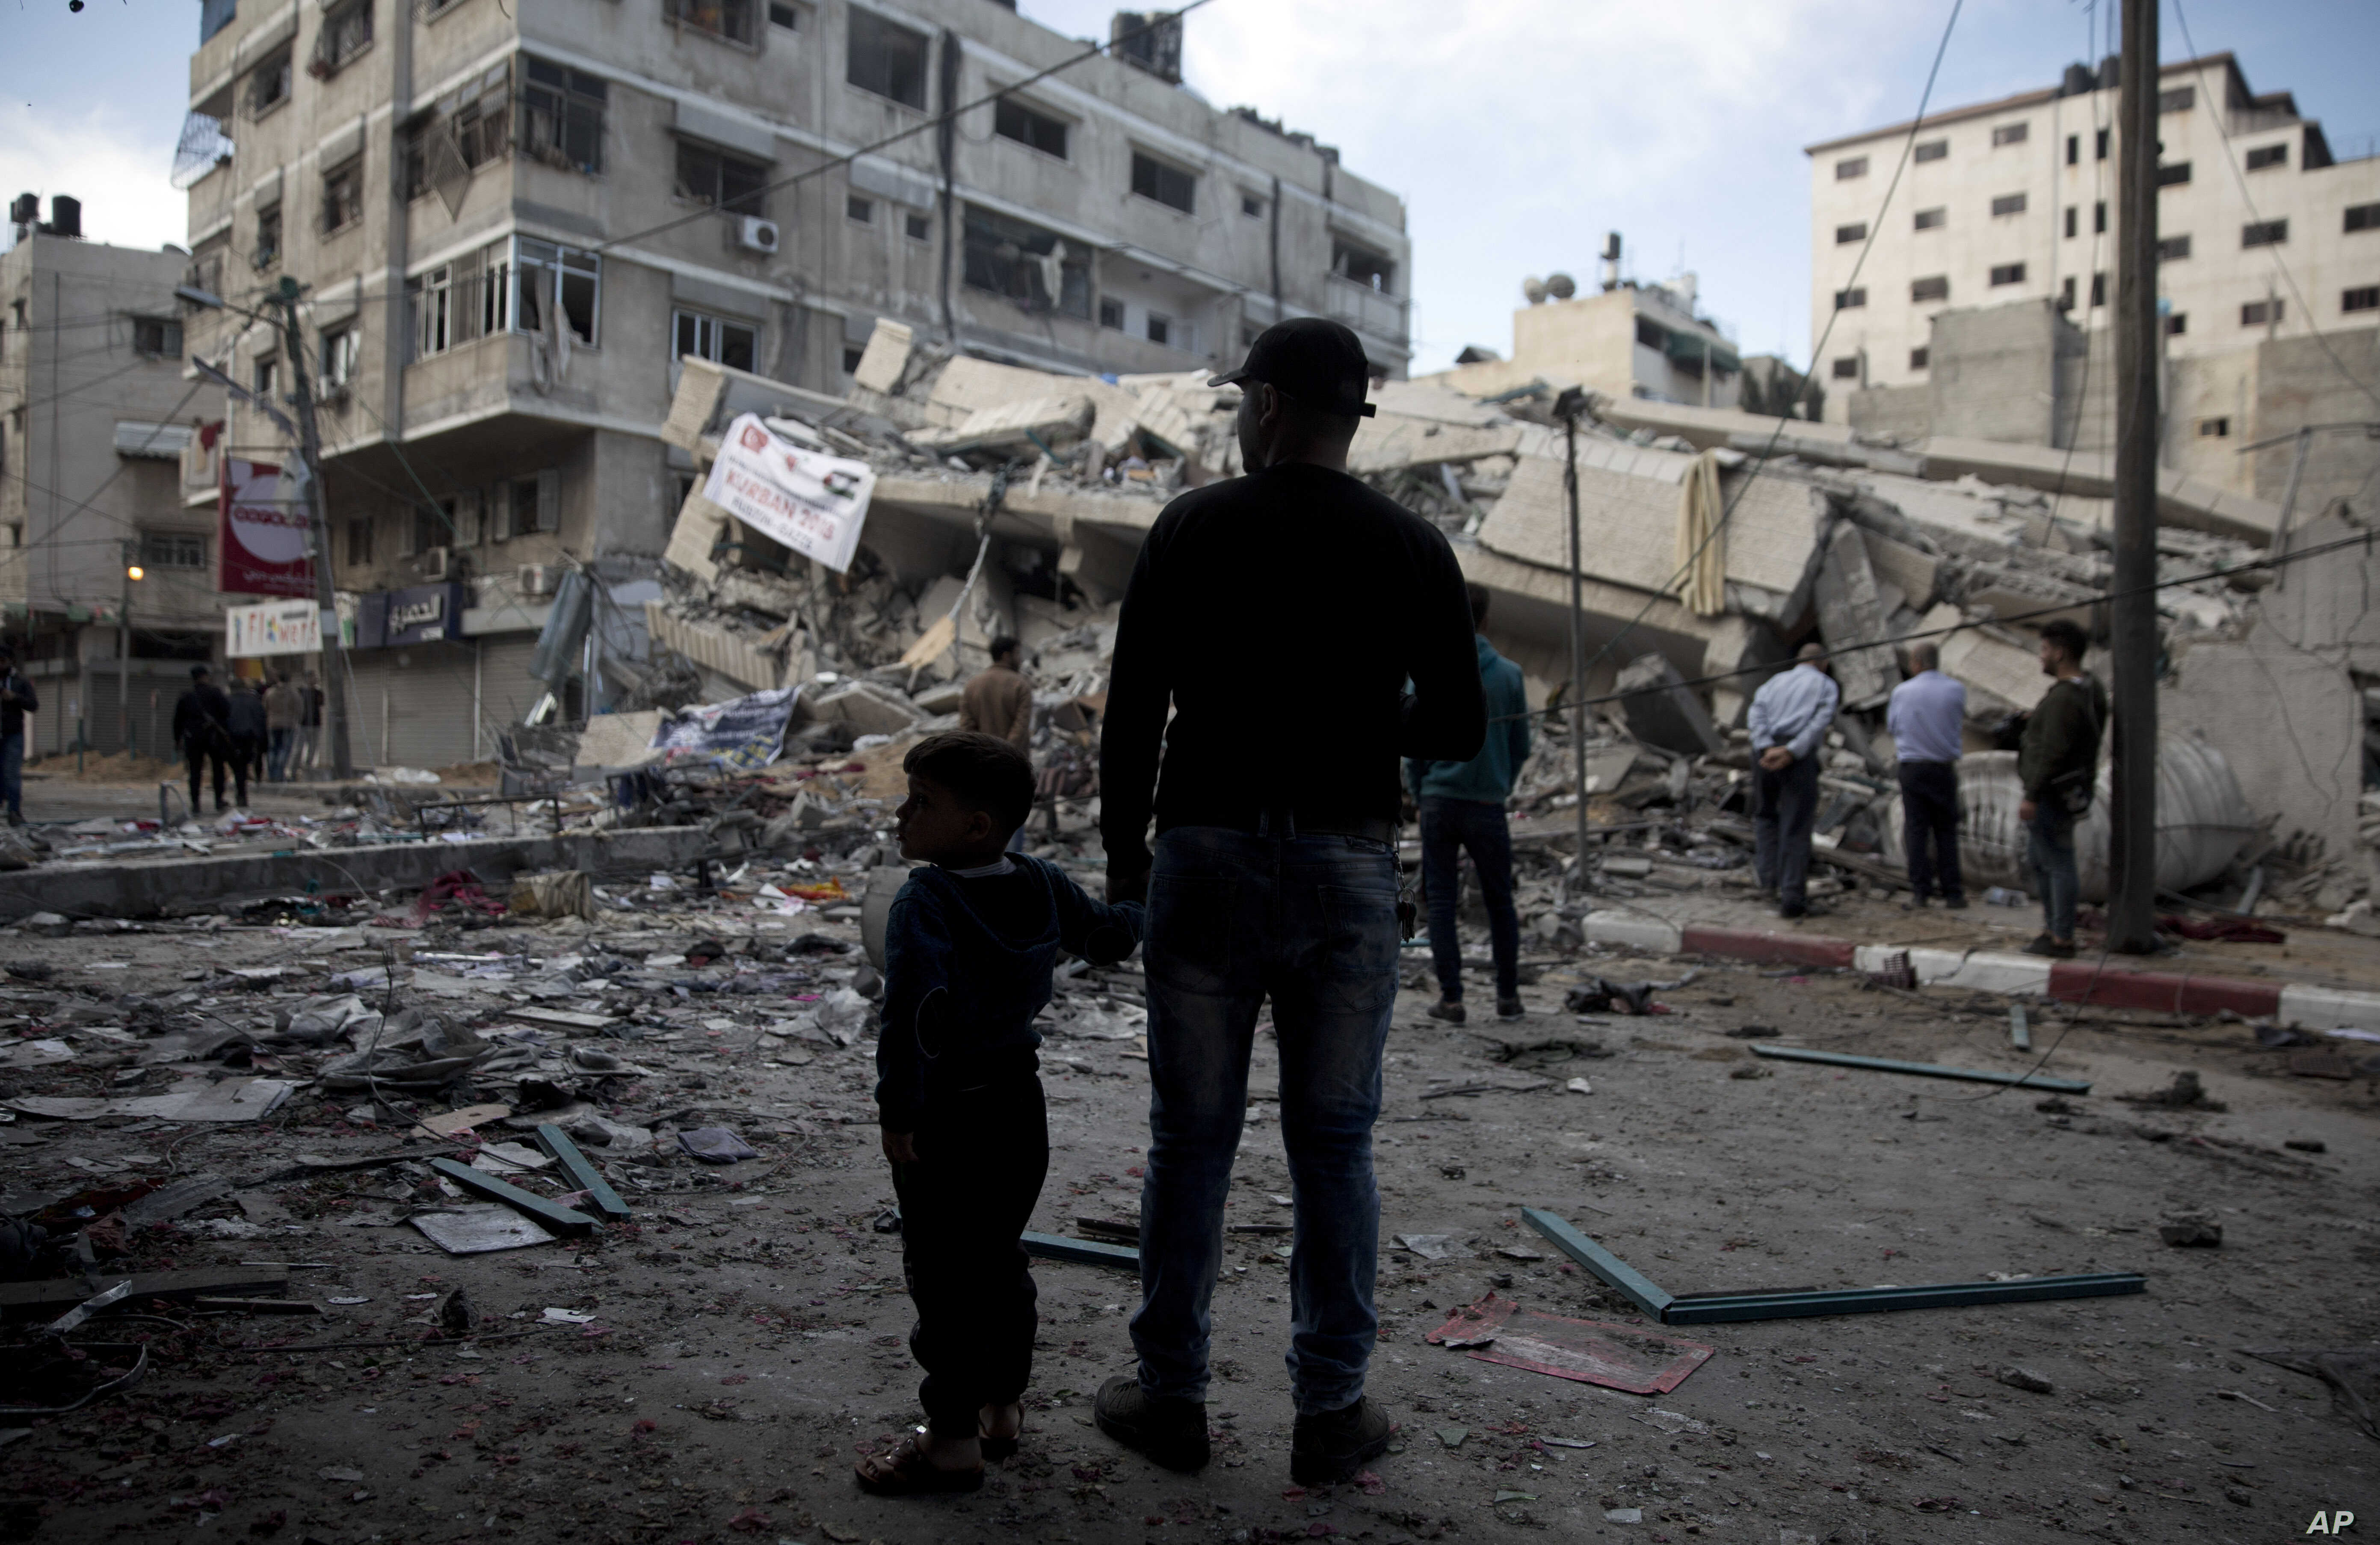 Palestinians stand in front of a destroyed multi-story building was hit by Israeli airstrikes in Gaza City, May 5, 2019.